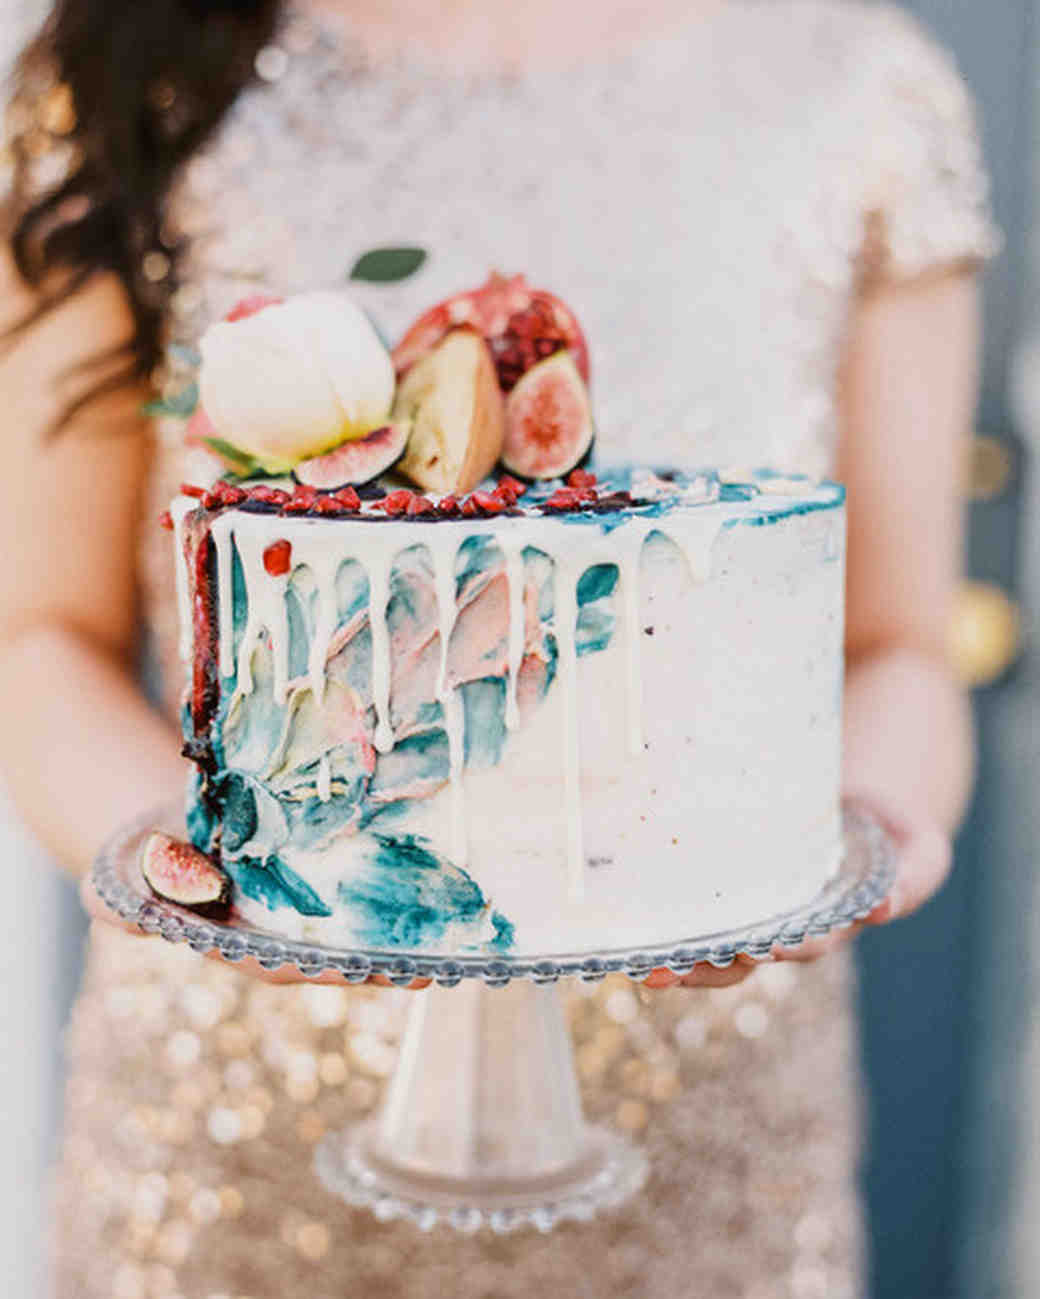 Painted Wedding Cake with Fruit